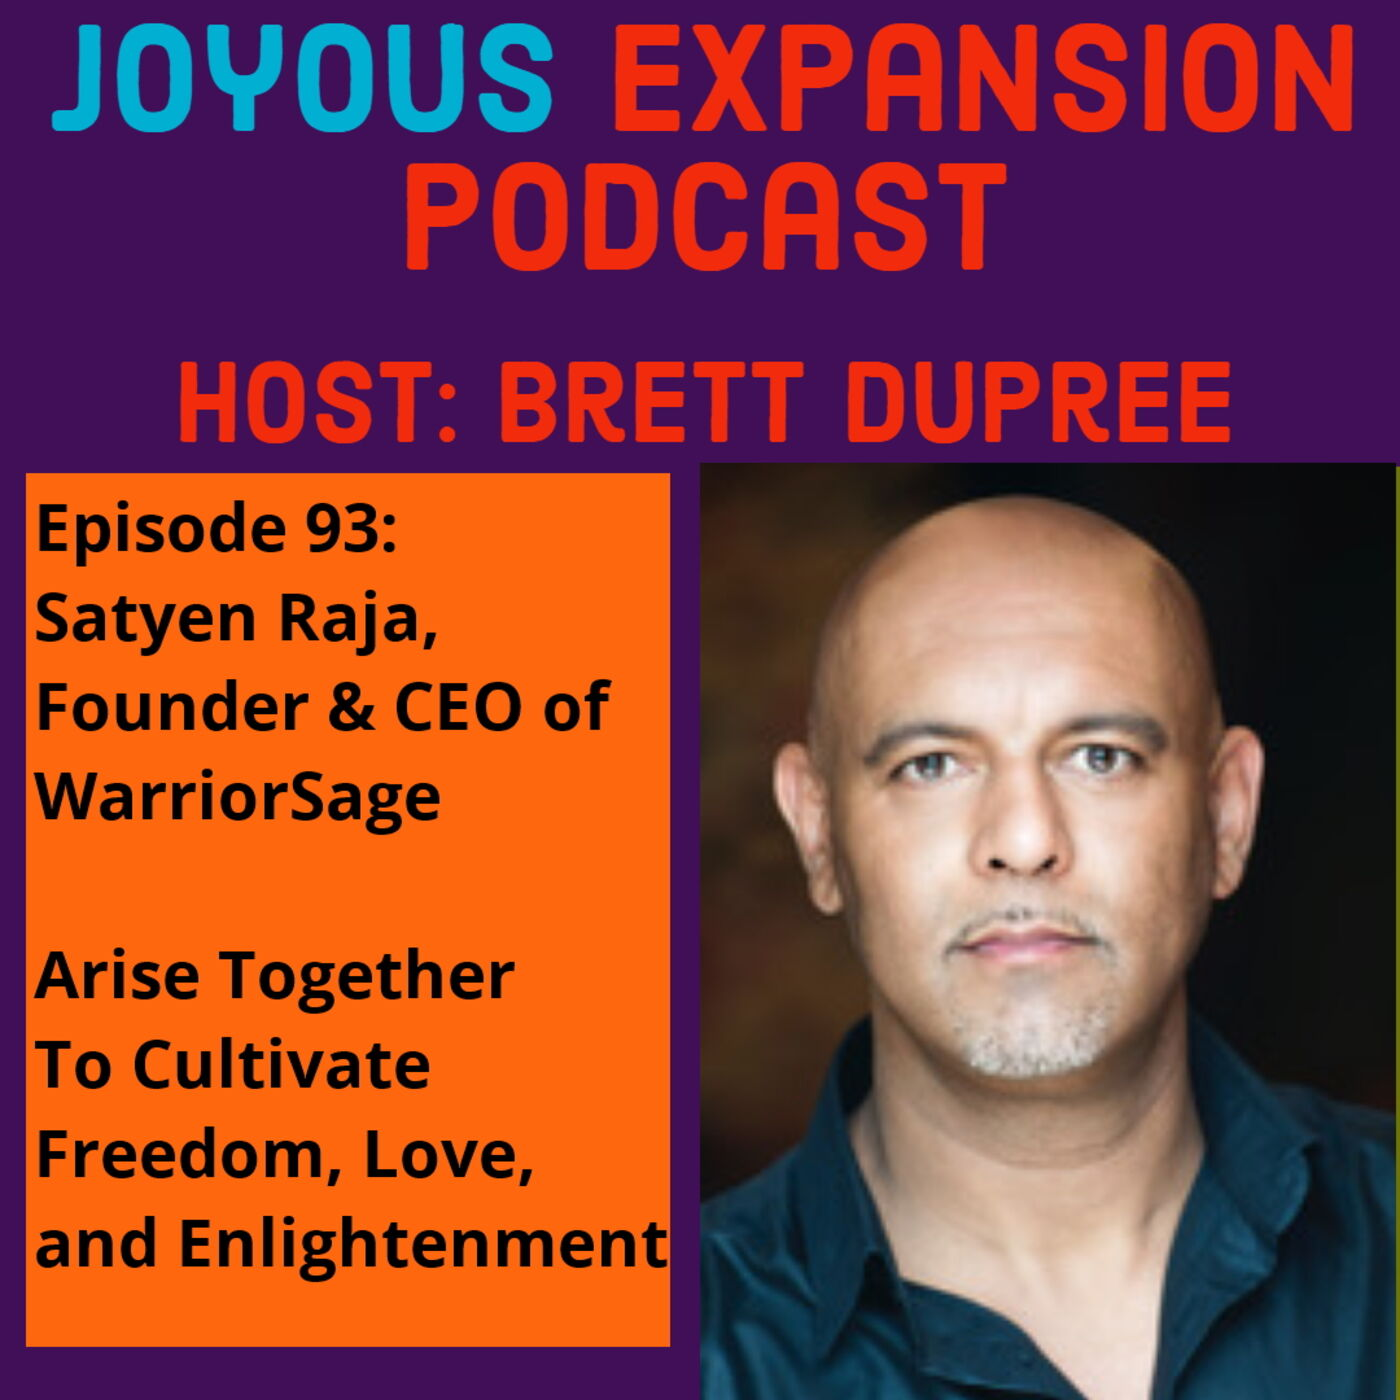 Joyous Expansion #93 - Satyen Raja -  Arise Together To Cultivate Freedom, Love, and Enlightenment